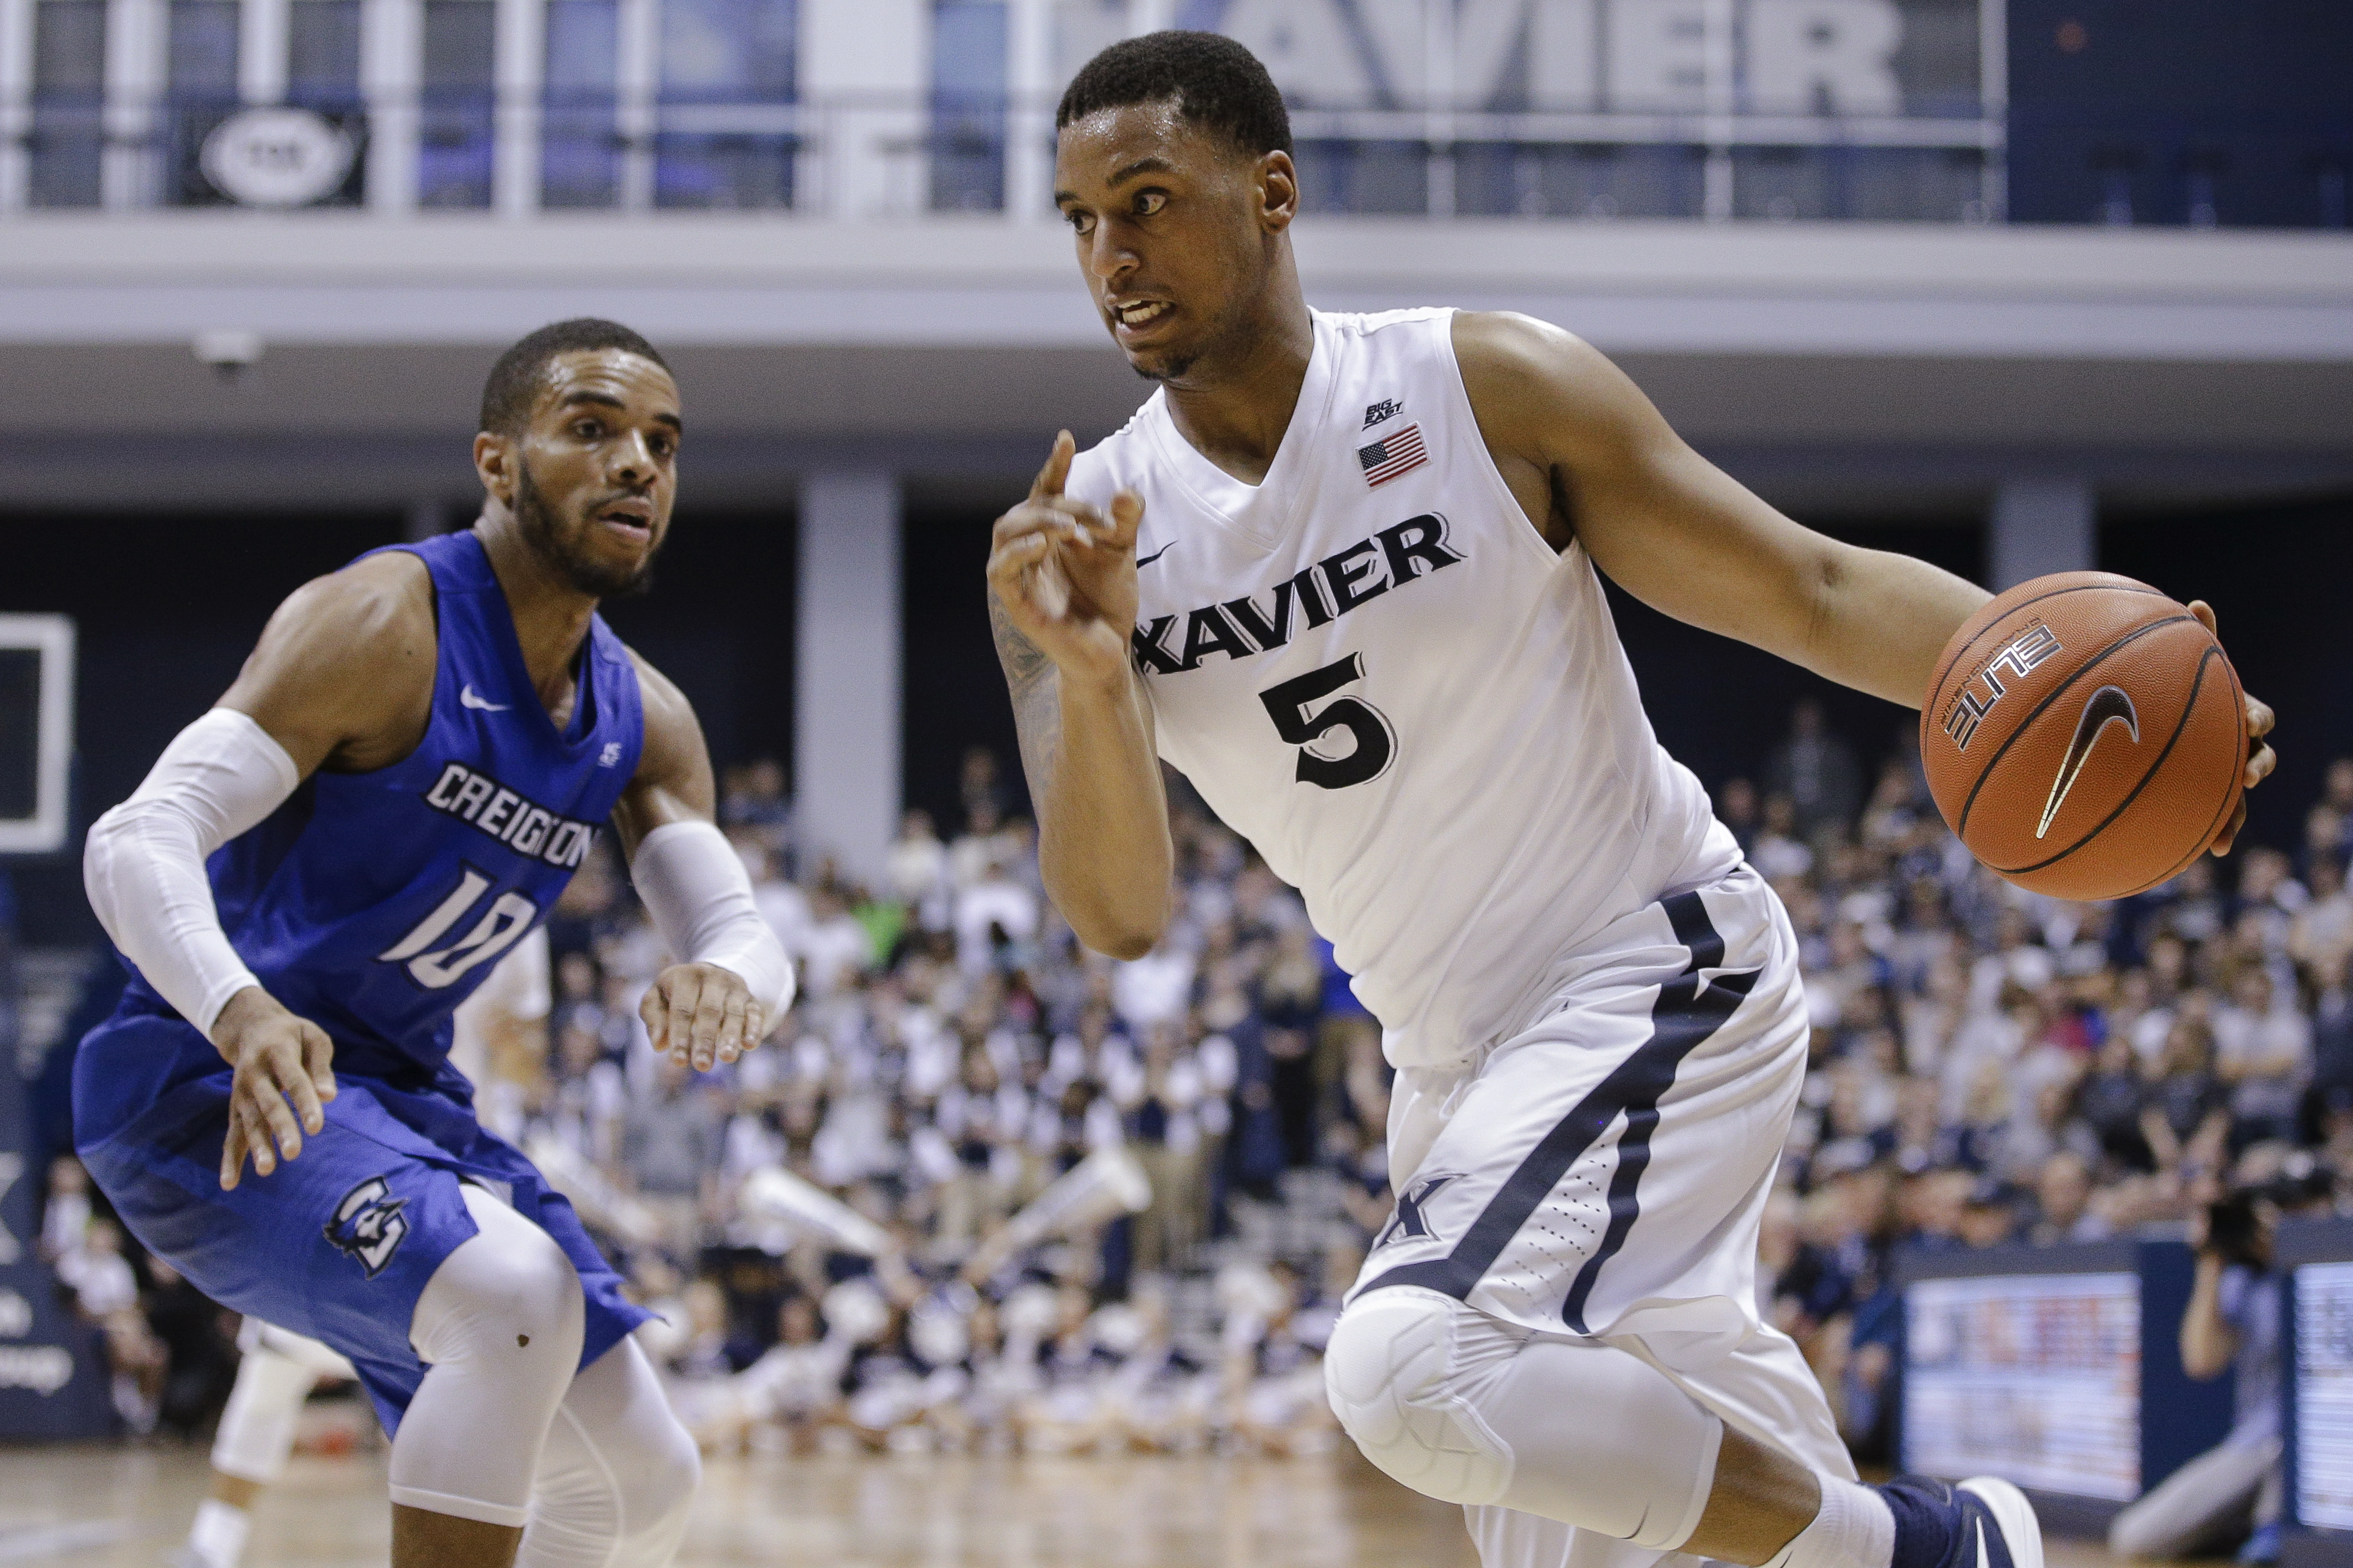 FILE - In this March 5, 2016, file photo, Xavier's Trevon Bluiett (5) drives past Creighton's Maurice Watson Jr. during an NCAA college basketball game in Cincinnati. No. 7 Xavier has its highest preseason ranking as it tries to build upon its breakthroug